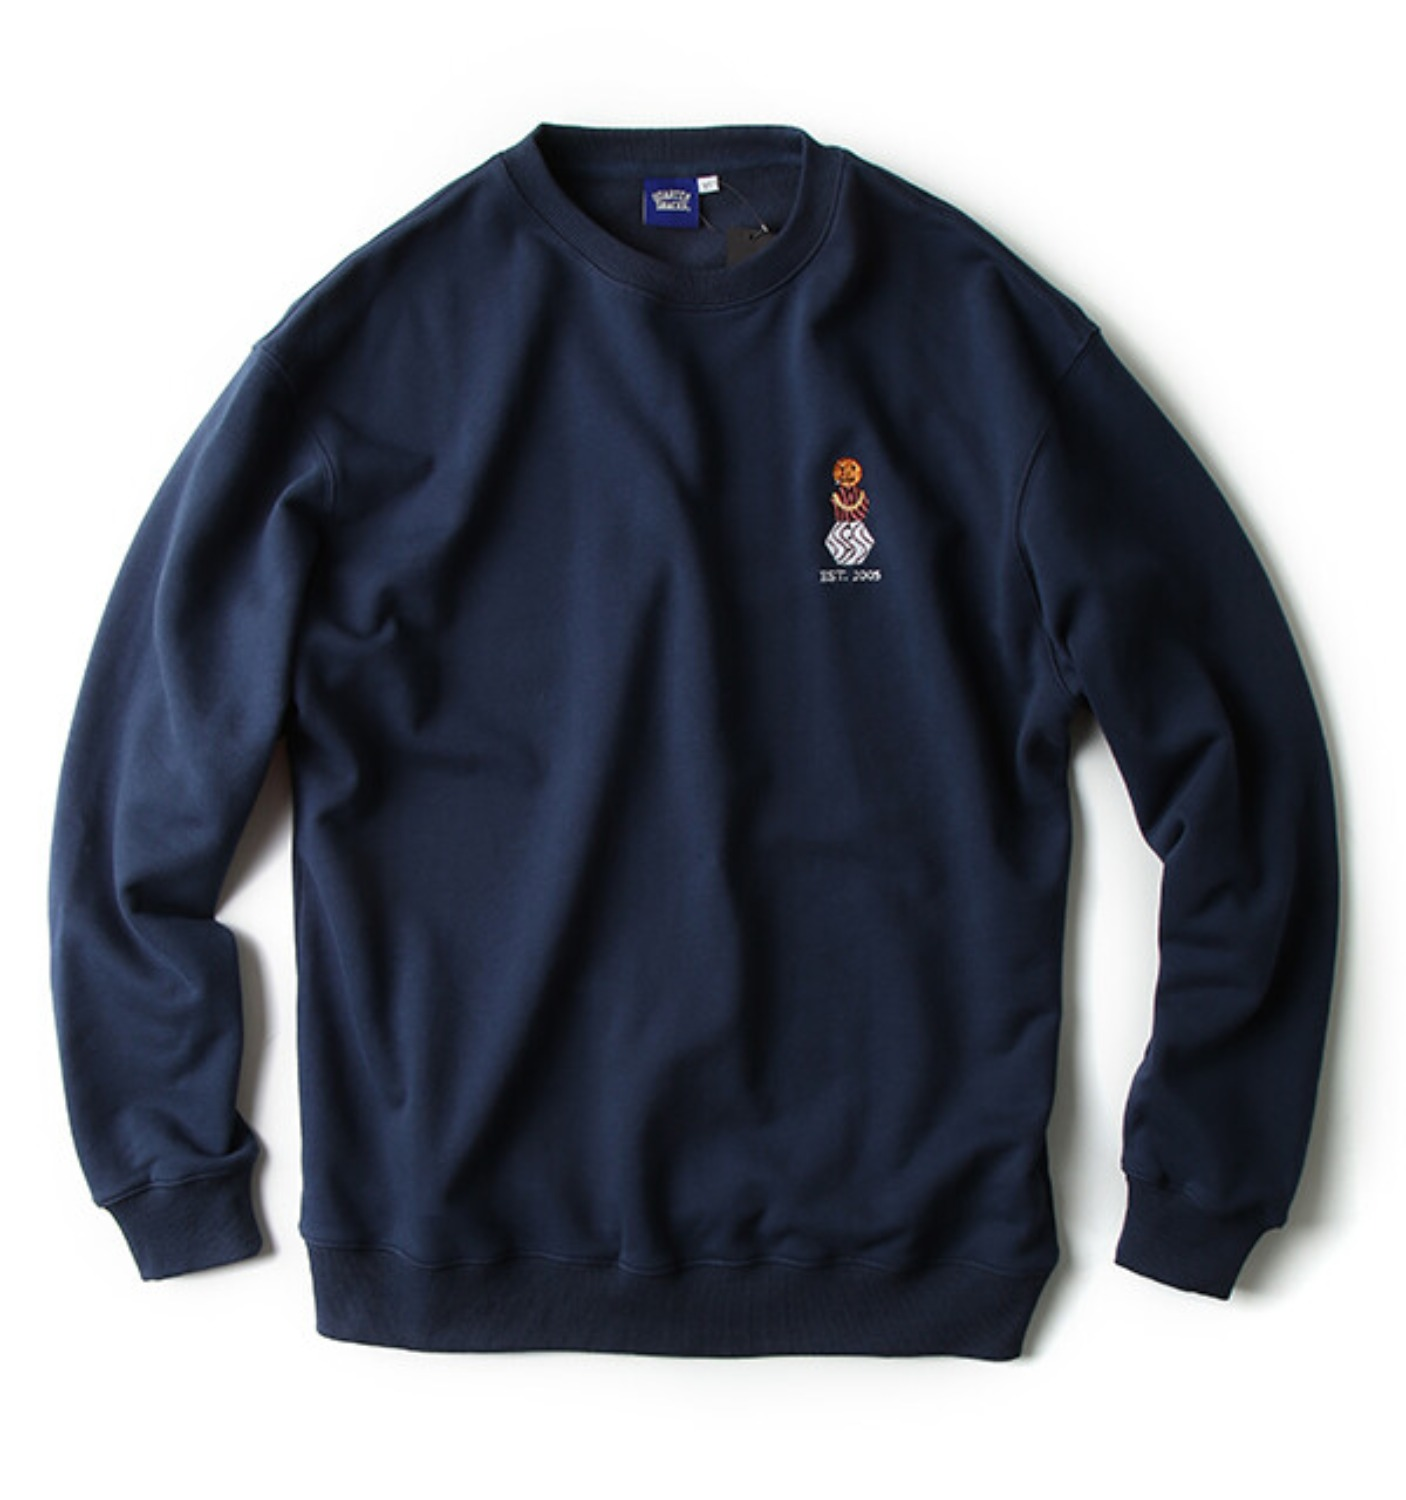 EMBROIDERED SNACKMAN CREW NAVY